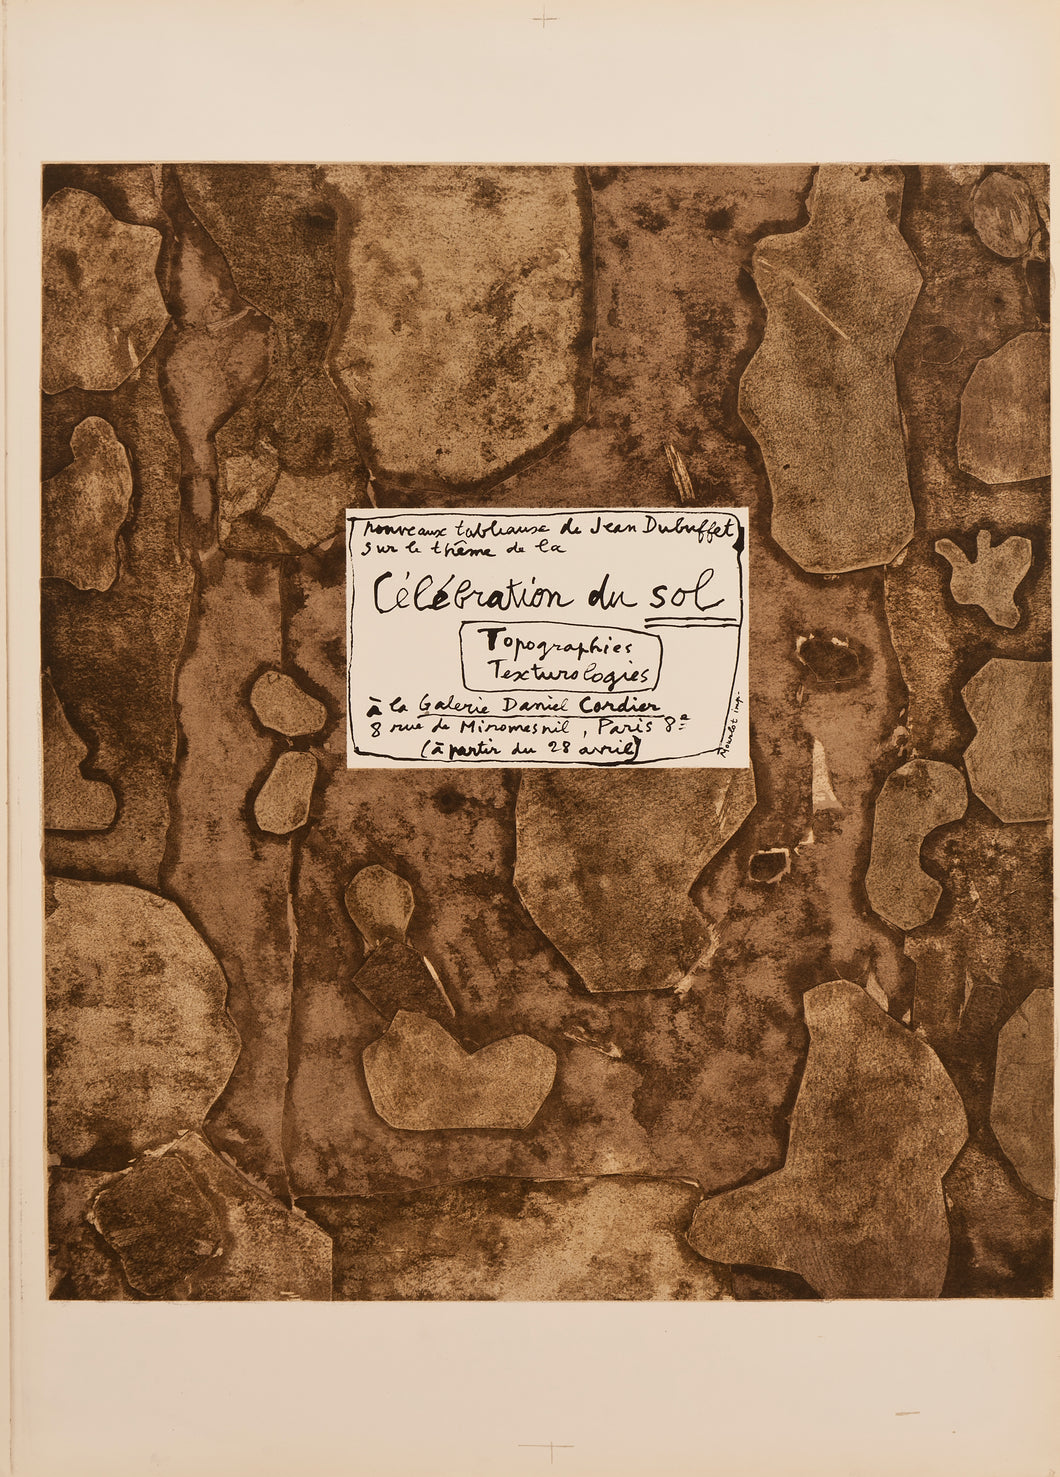 Celebration du Sol by Jean Dubuffet 1959